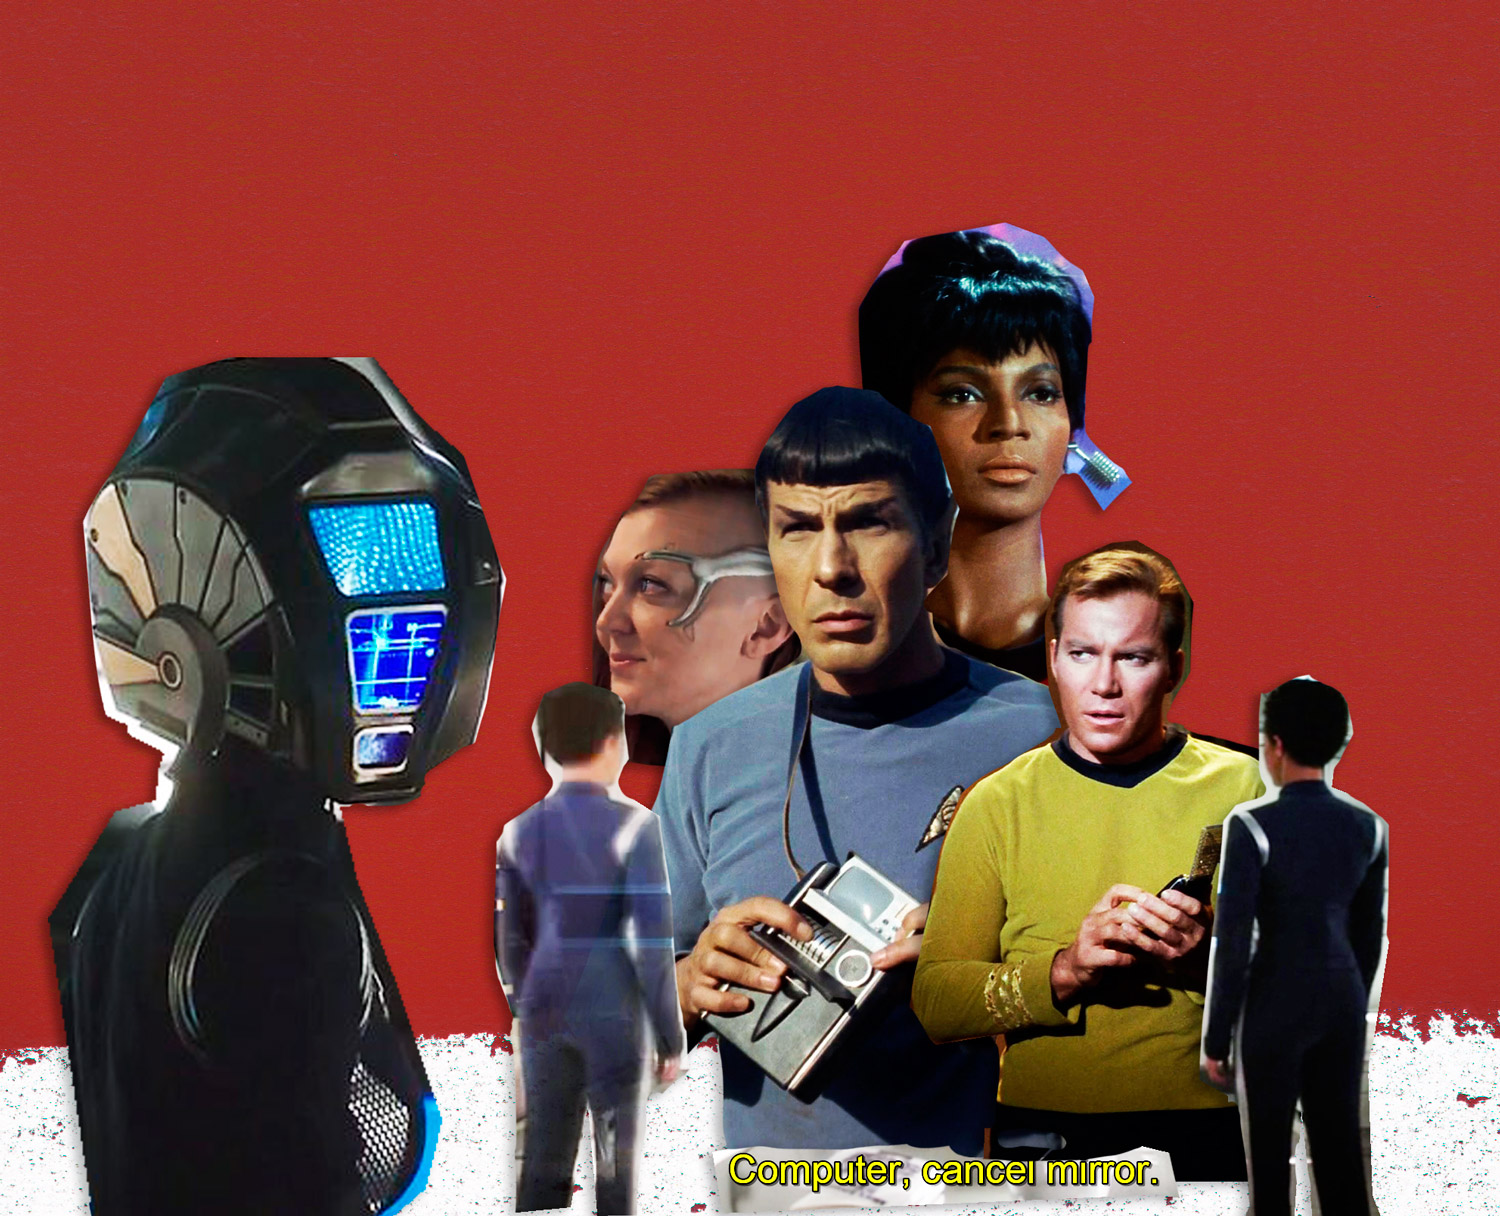 Star Trek : Discovery (2017 - 2018) et Star Trek : The original series (1966 - 1969)